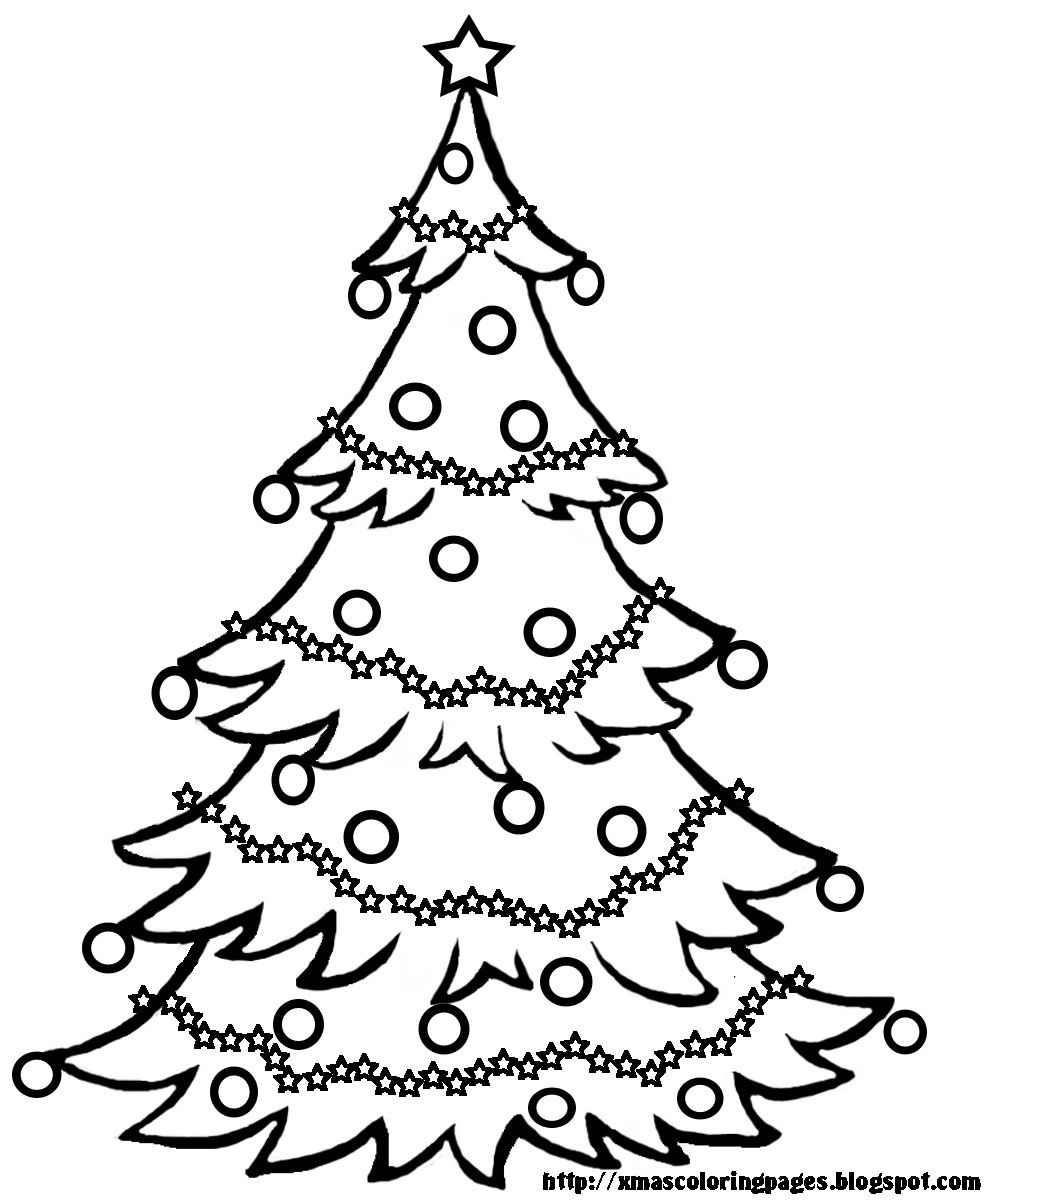 Hundreds Of Free Printable Xmas Coloring Pages And Xmas Activity Sheets For Childr Christmas Tree Coloring Page Christmas Tree Drawing Christmas Coloring Pages